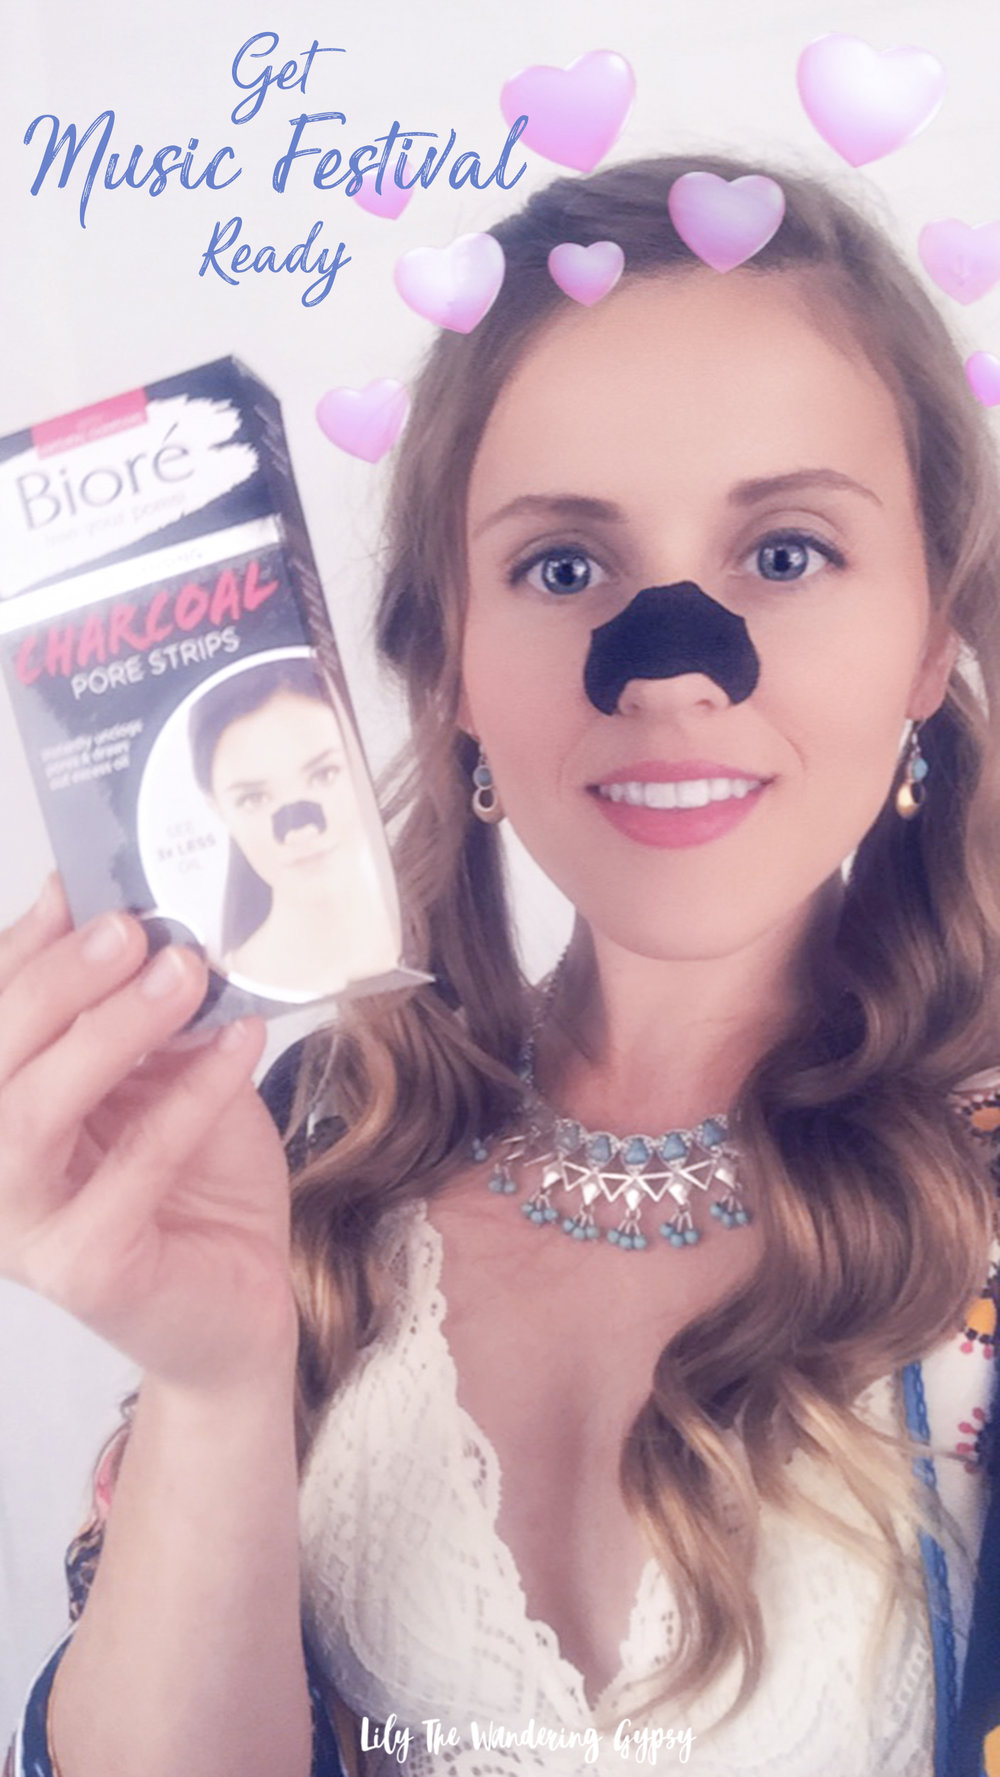 Bioré Deep Cleansing Charcoal Pore Strips at Amazon and Target